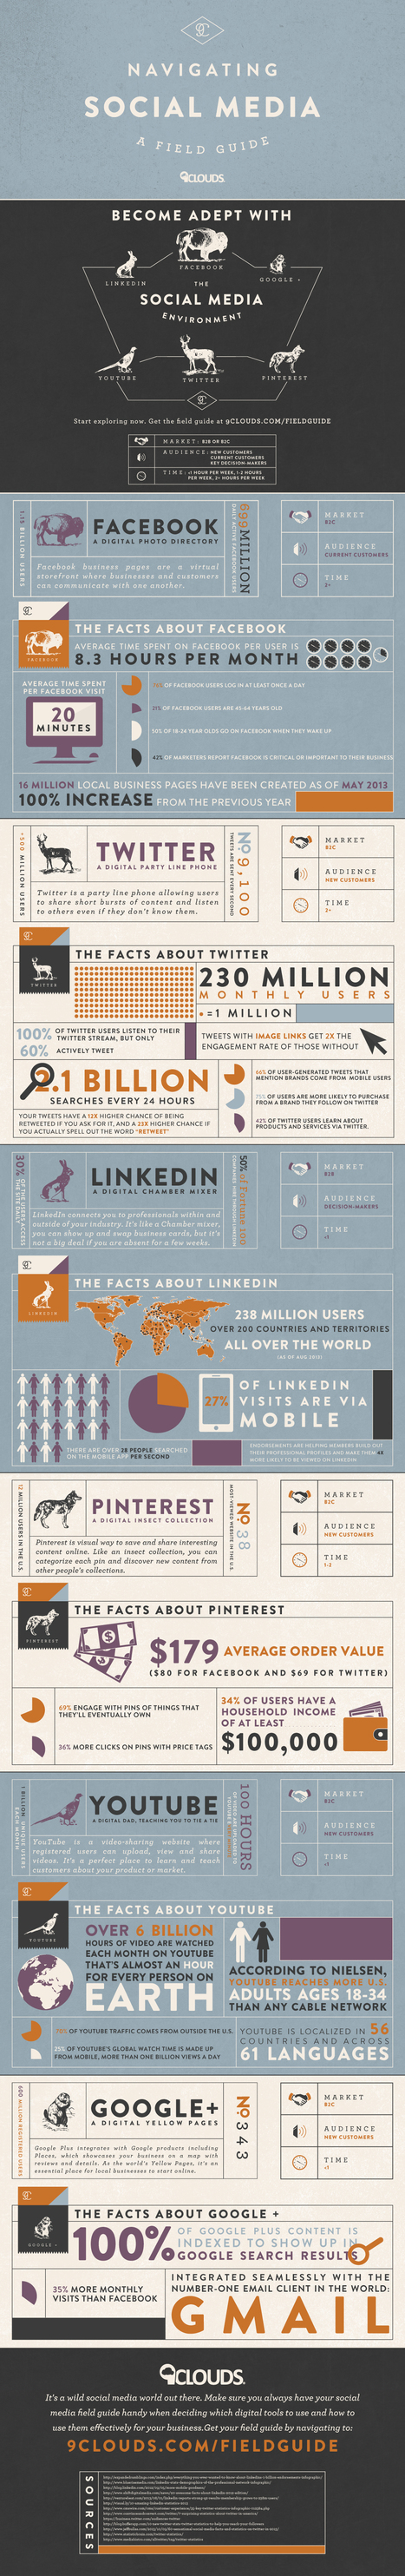 An Infographic Field Guide to Navigating Social Media | Media & Com | Scoop.it